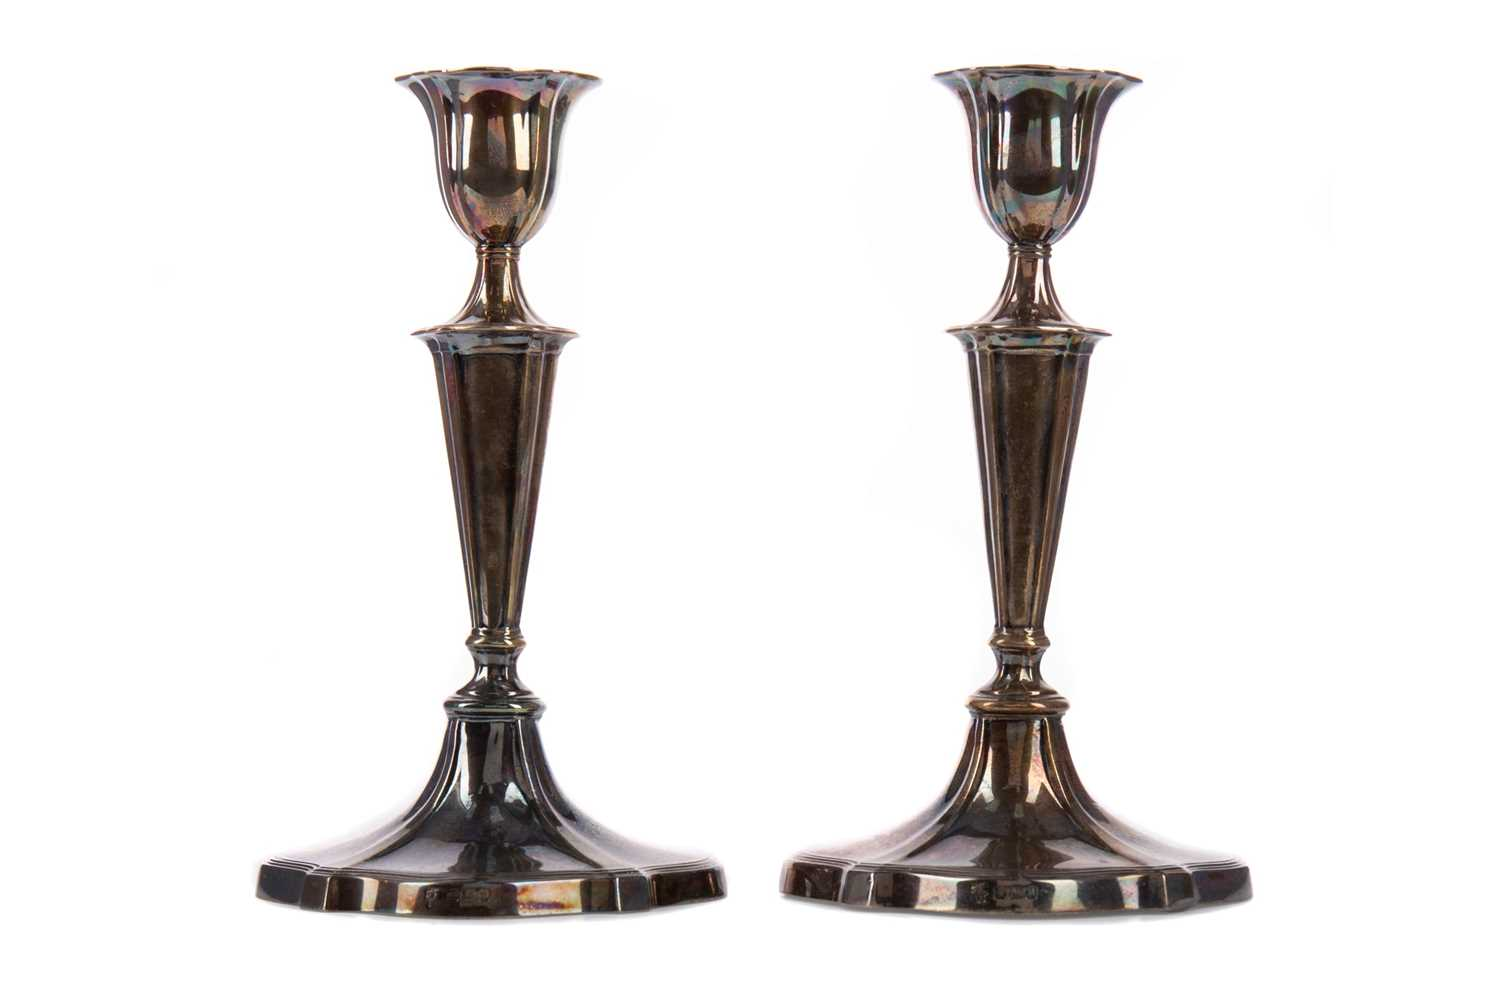 Lot 404 - A PAIR OF EDWARDIAN SILVER CANDLE STICKS